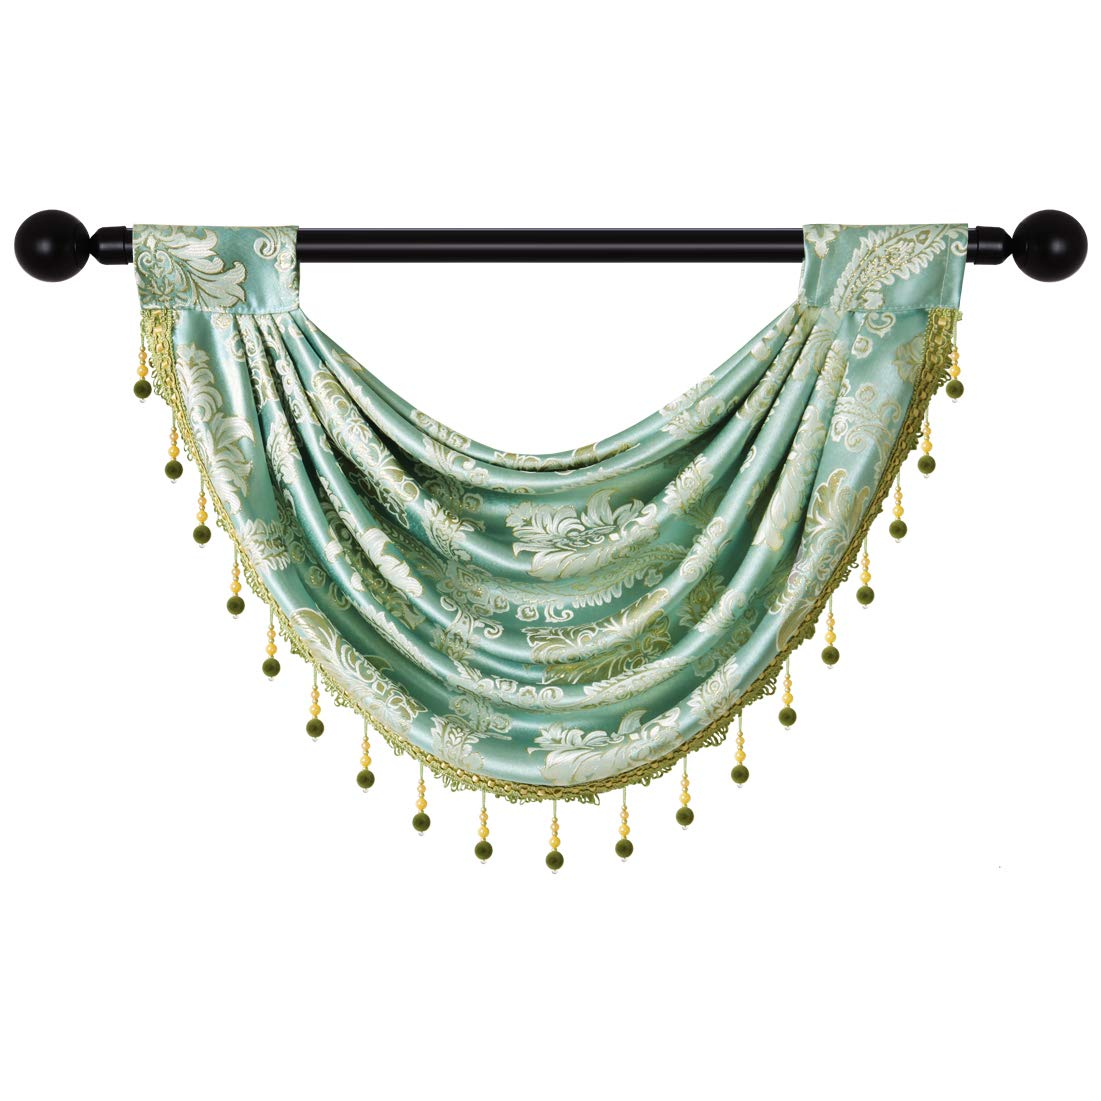 """elkca Jacquard Damask Curtain Valance for Living Room Single Swag Waterfall Valance for Kitchen (Damask-Blue, 30"""" W x 22"""" L,1 Panel)"""